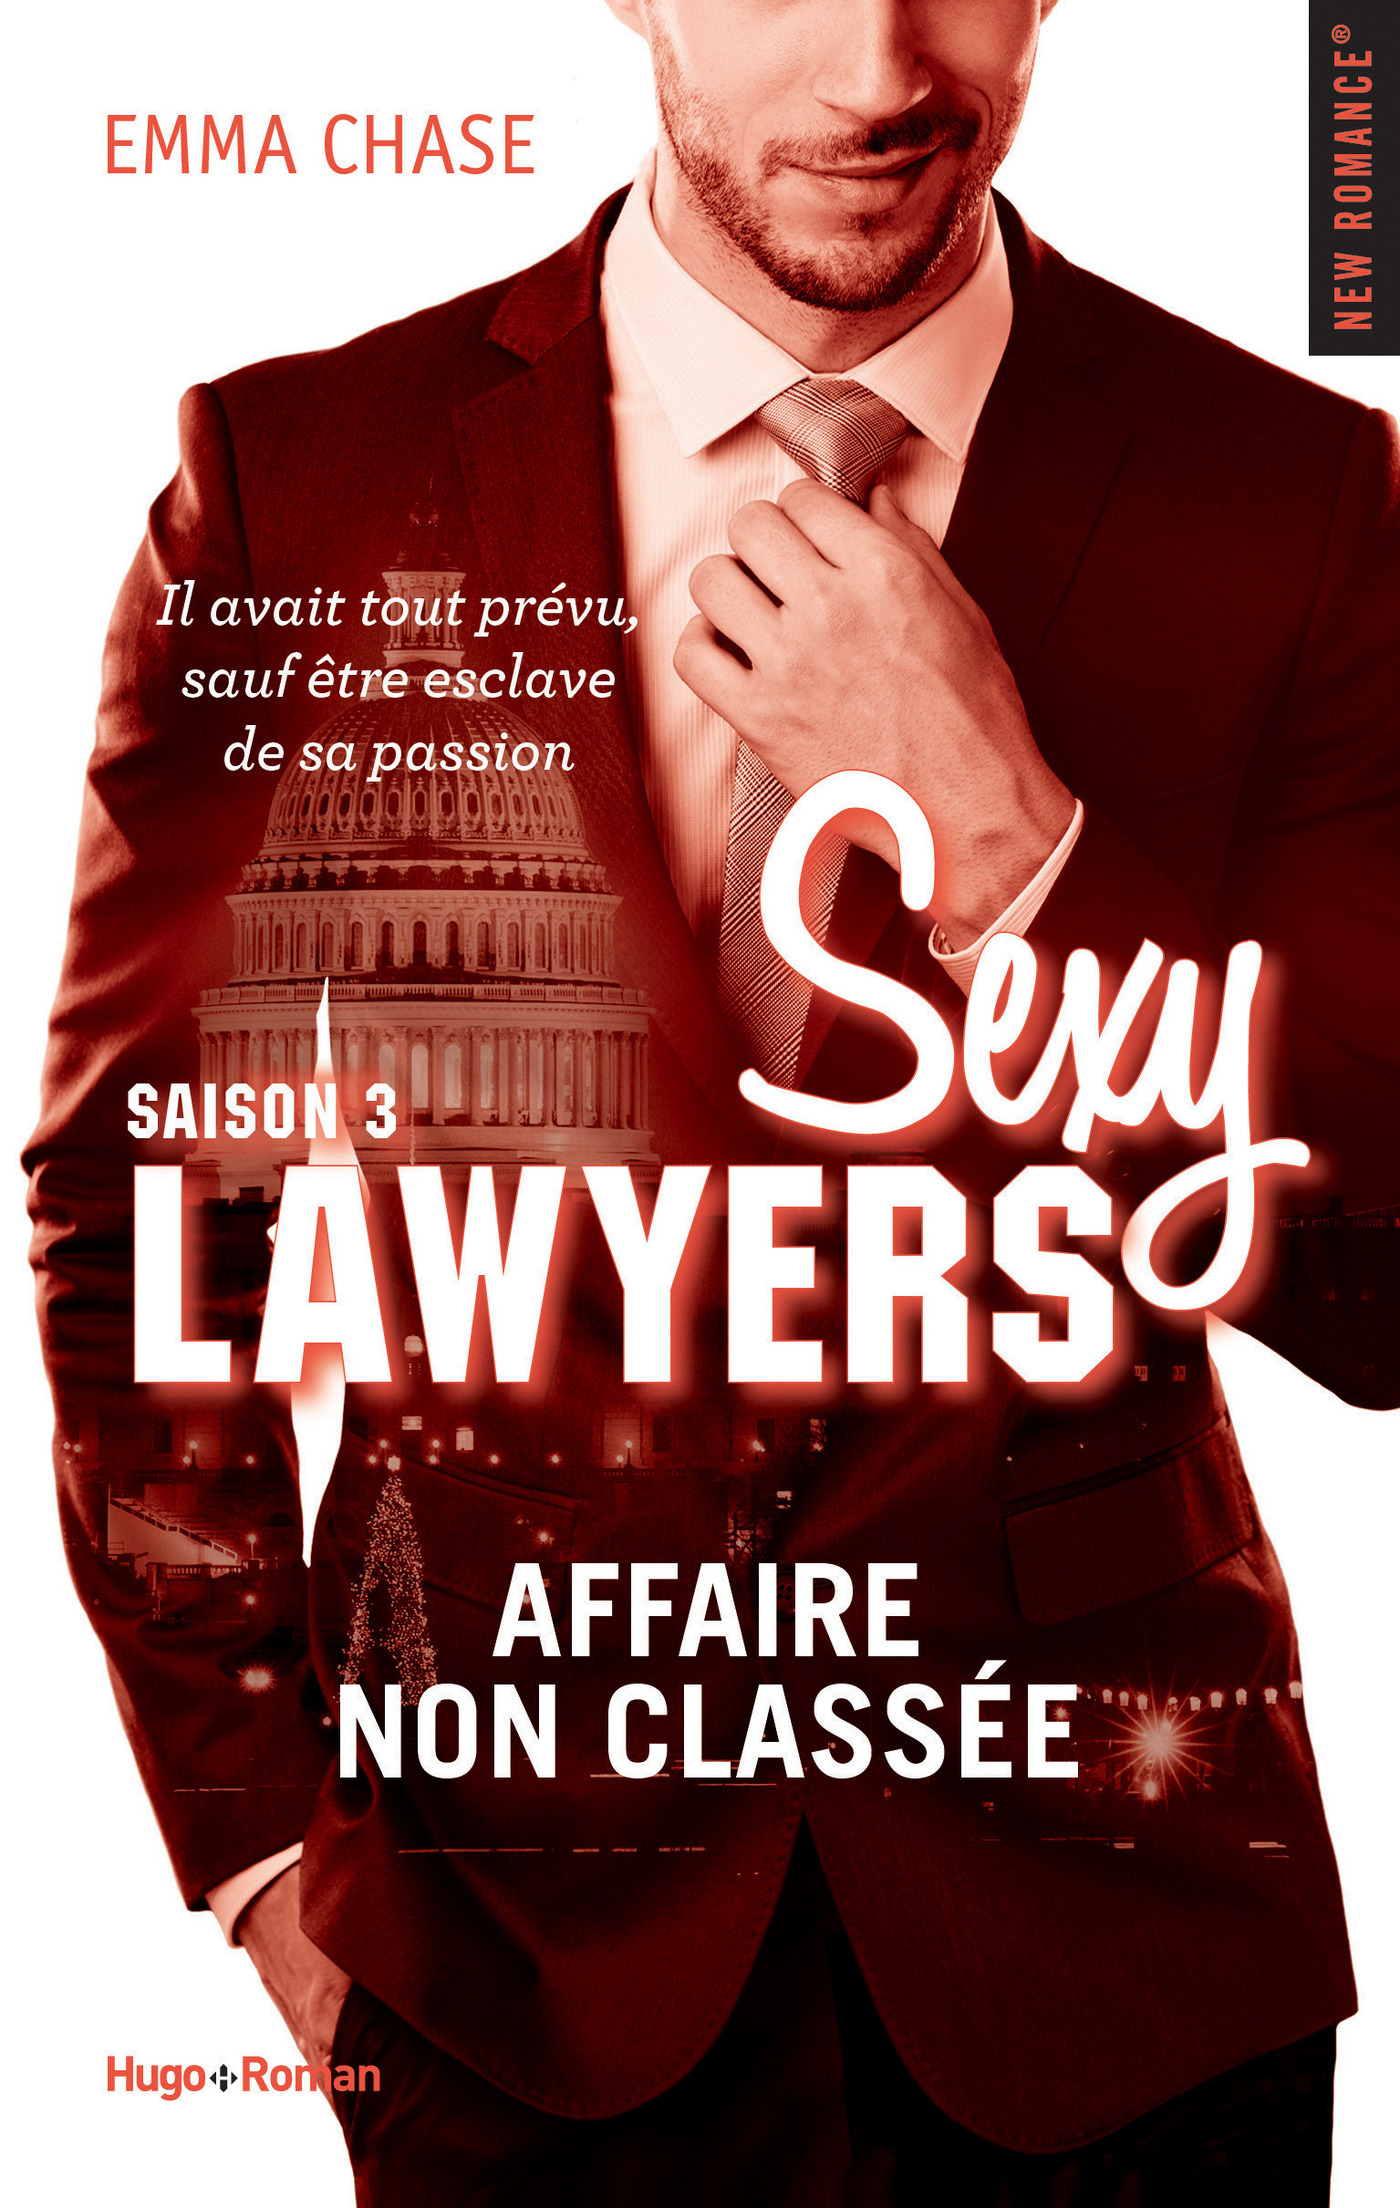 Sexy Lawyers Saison 3 Affaire non classée (ebook)